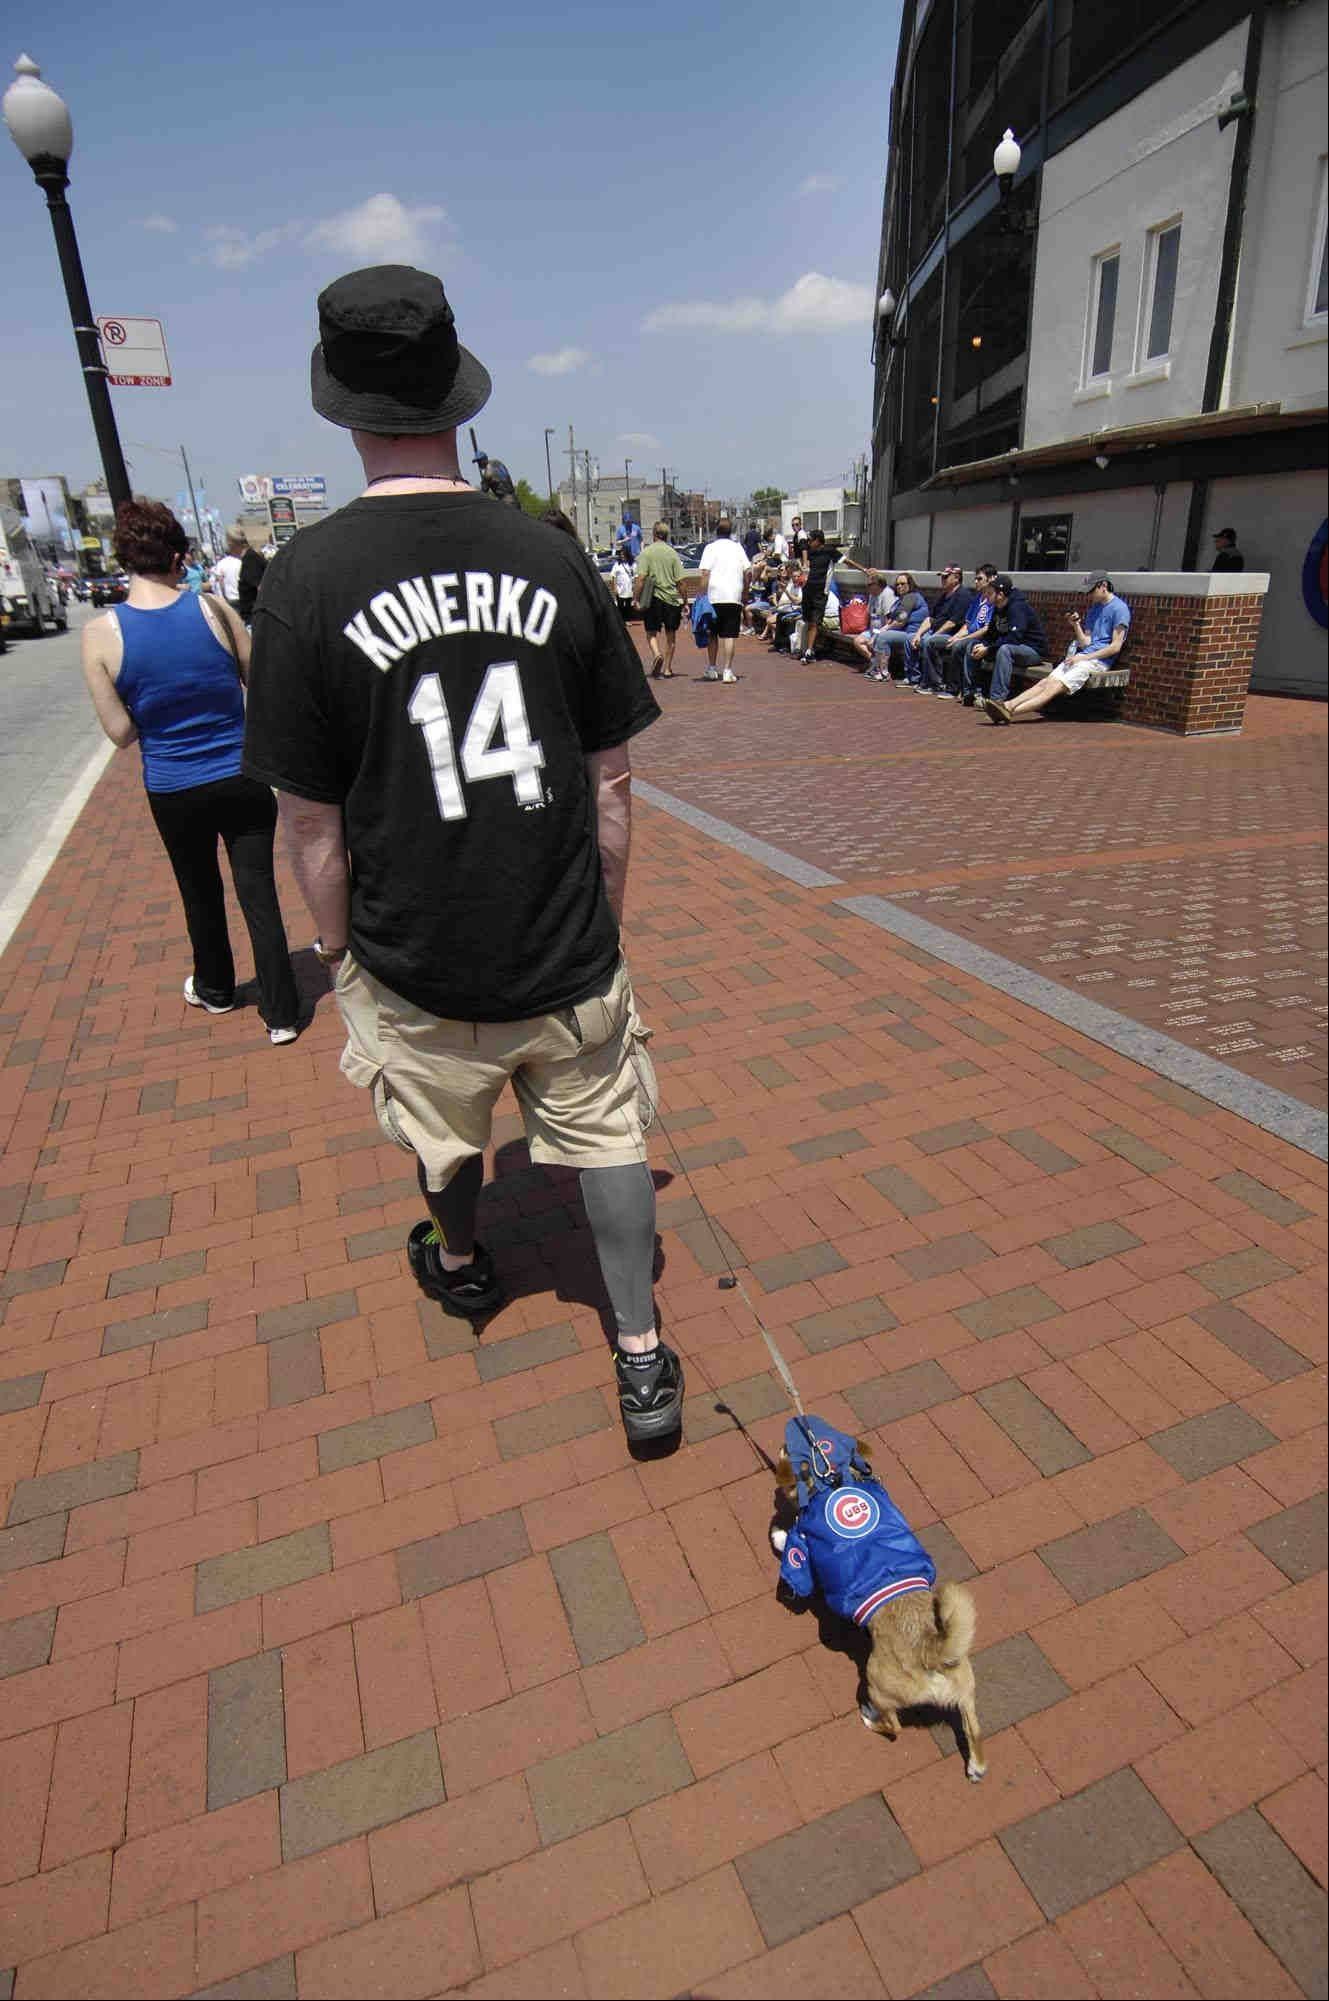 Larry Gold wears his White Sox jersey as his roommate Erwin, an eight-year-old chihuahua wears his Cubs jersey and hat as they walk around Wrigley Field before the game. Larry said he lives on the south side of his Chicago apartment while Erwin lives on the north side.